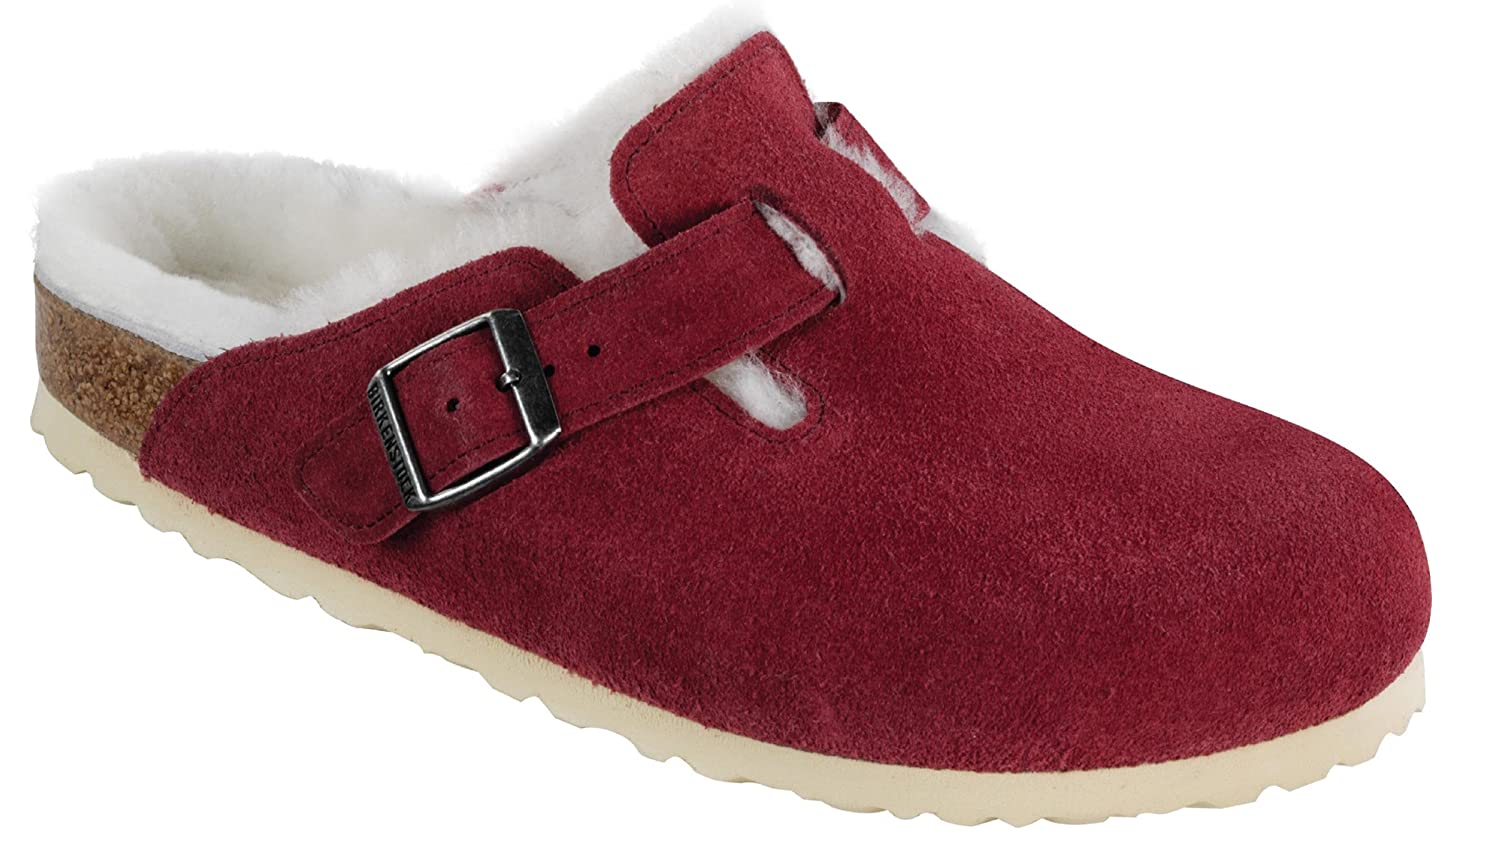 7f217397a Birkenstock Women's Boston Shearling Clog Bordeaux Suede Size 38 M EU:  Amazon.co.uk: Shoes & Bags